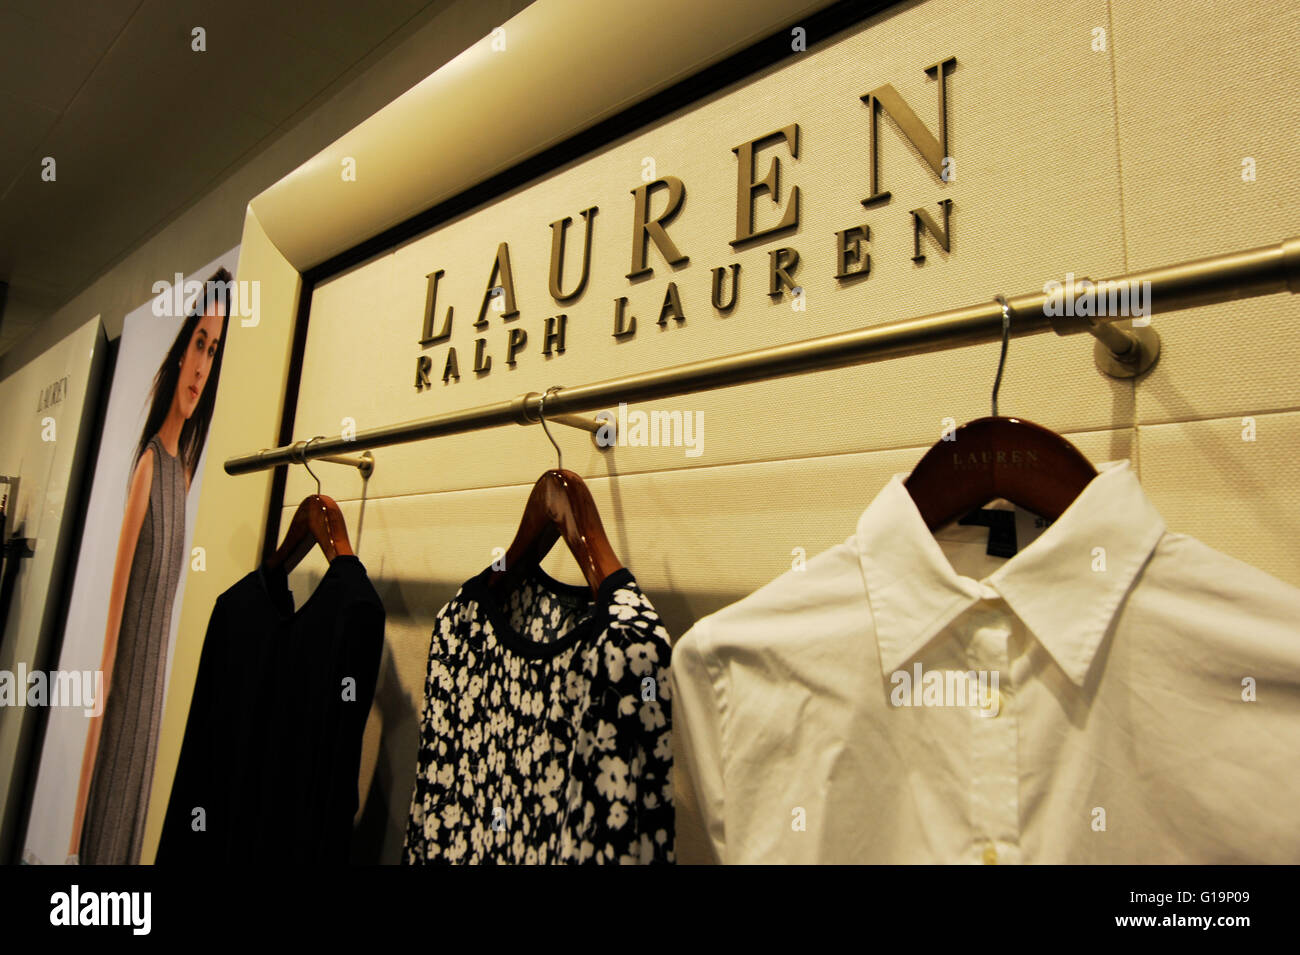 clothing, clothes,apparel,UK,Ralph Lauren - Stock Image